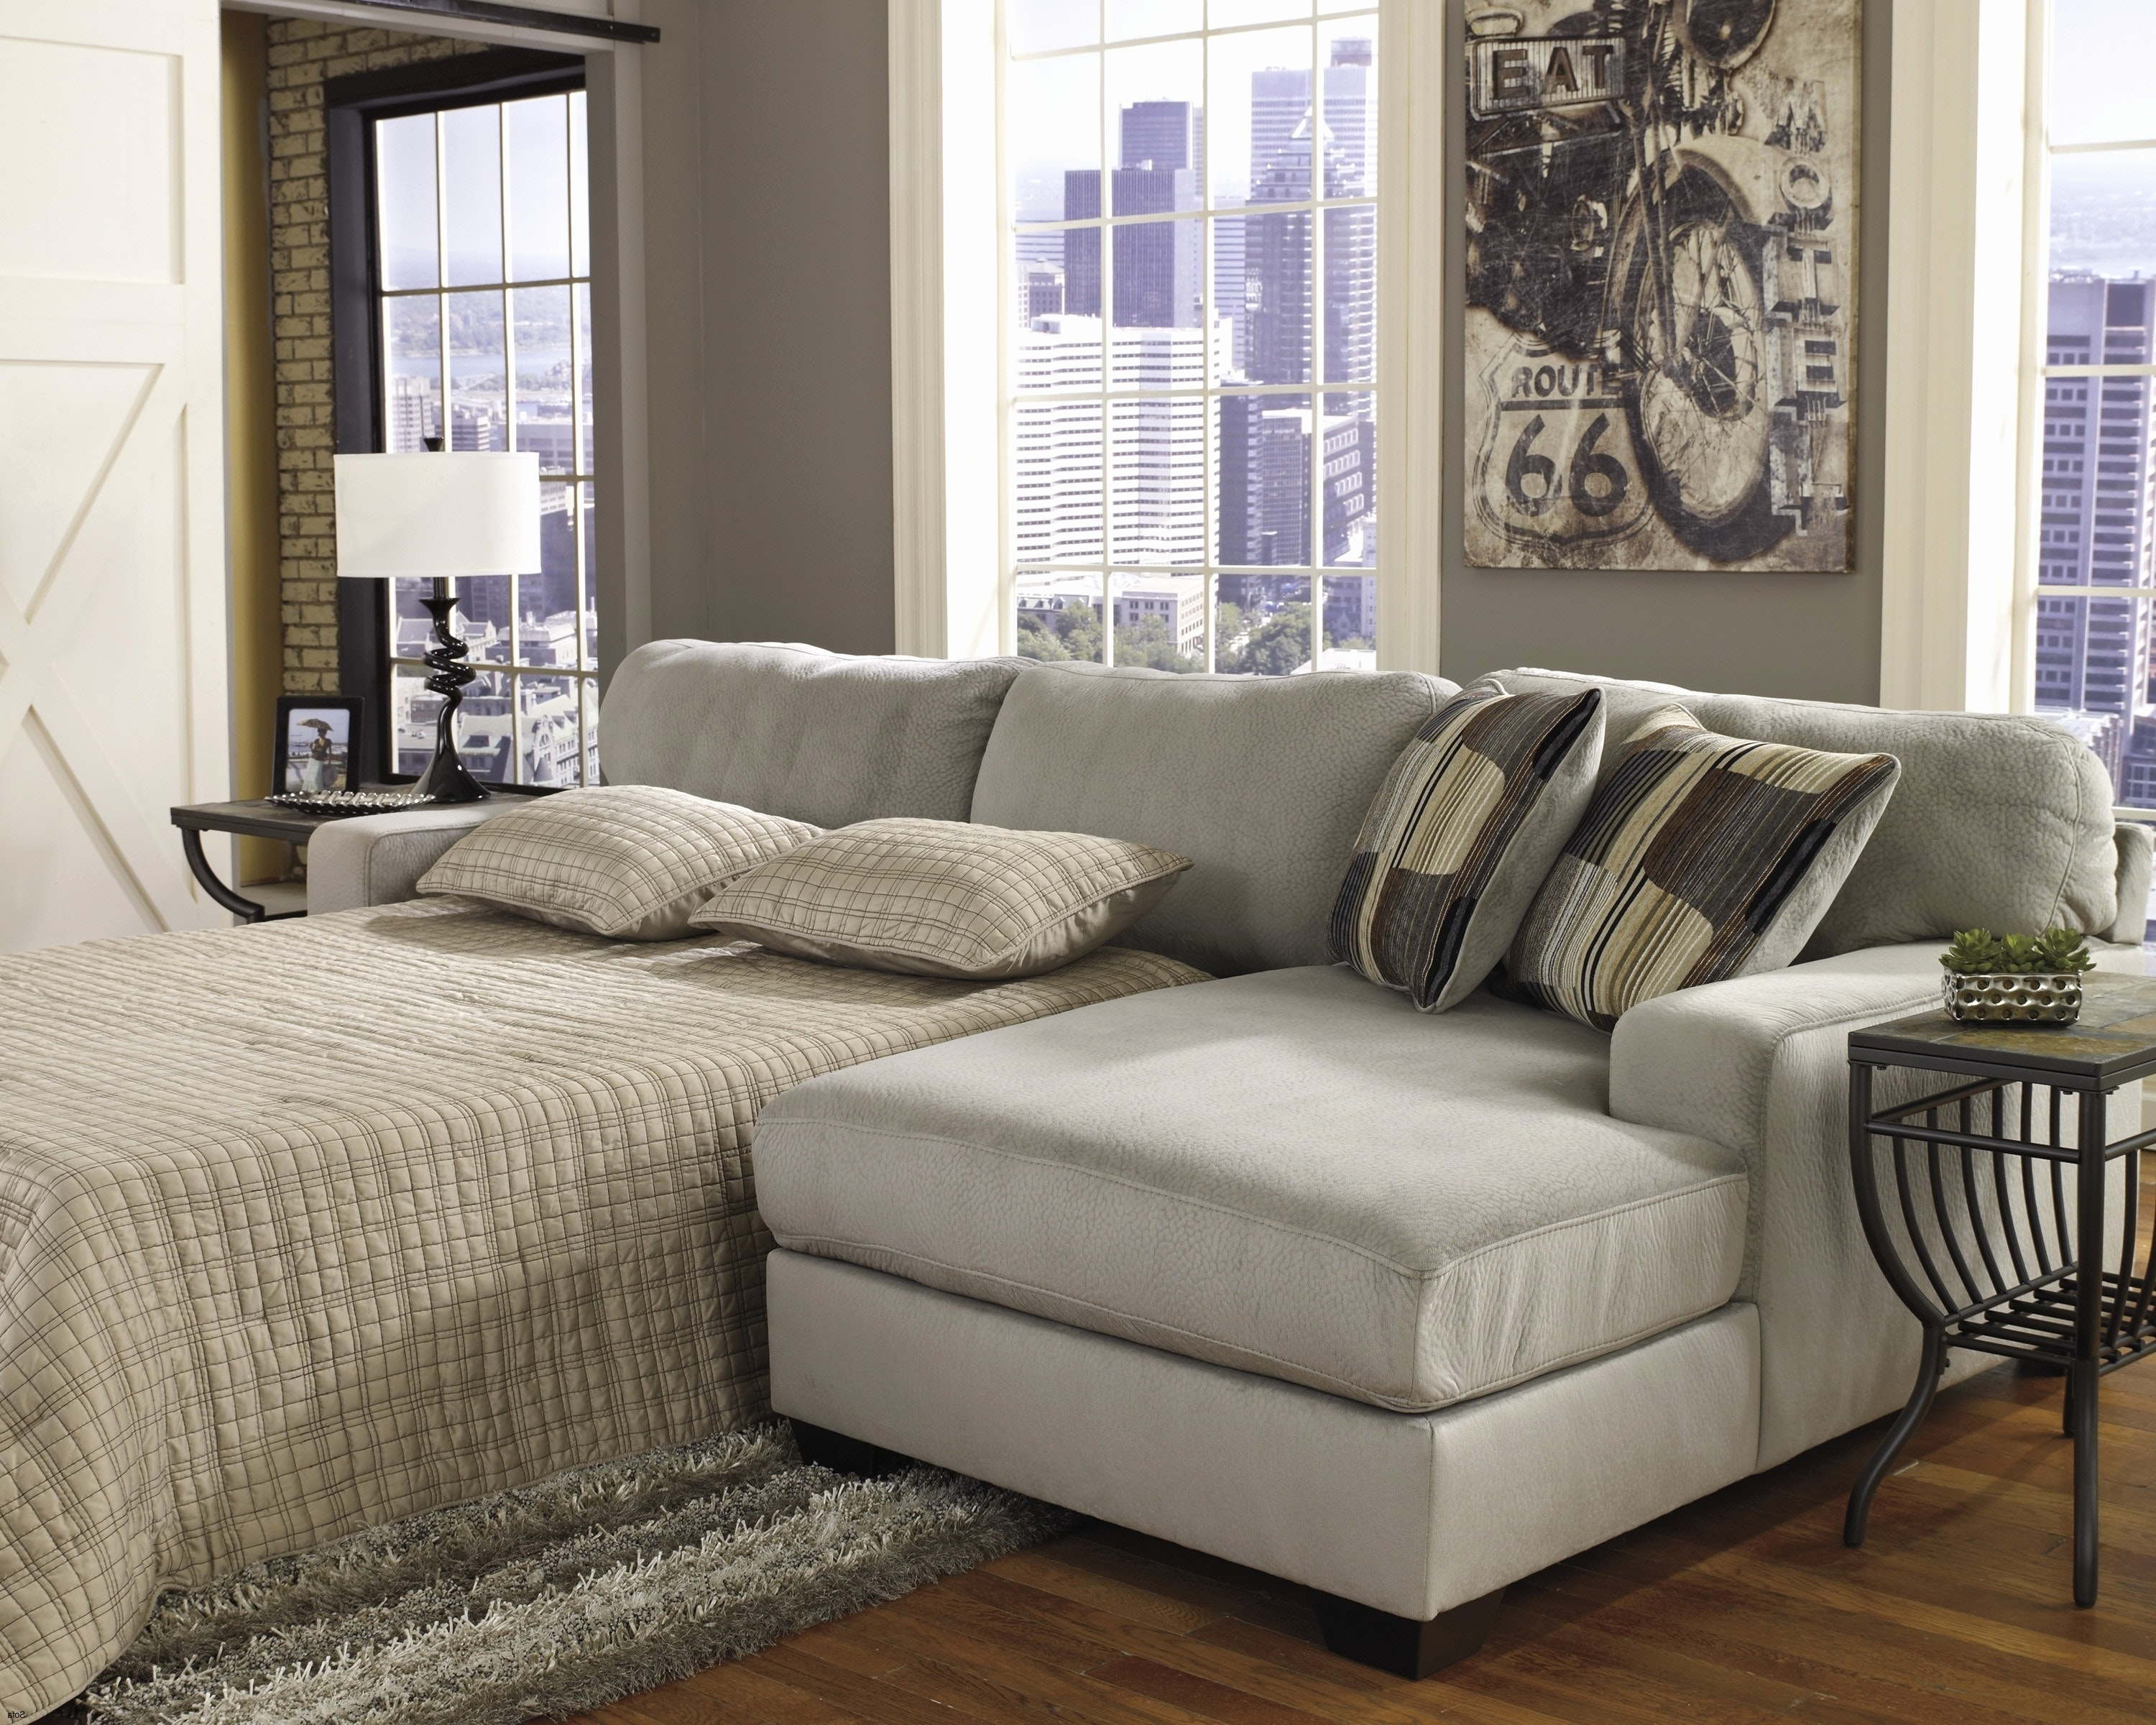 Most Popular Awesome Sectional Sofa Sleeper 2018 – Couches Ideas Intended For Room And Board Sectional Sofas (Gallery 18 of 20)